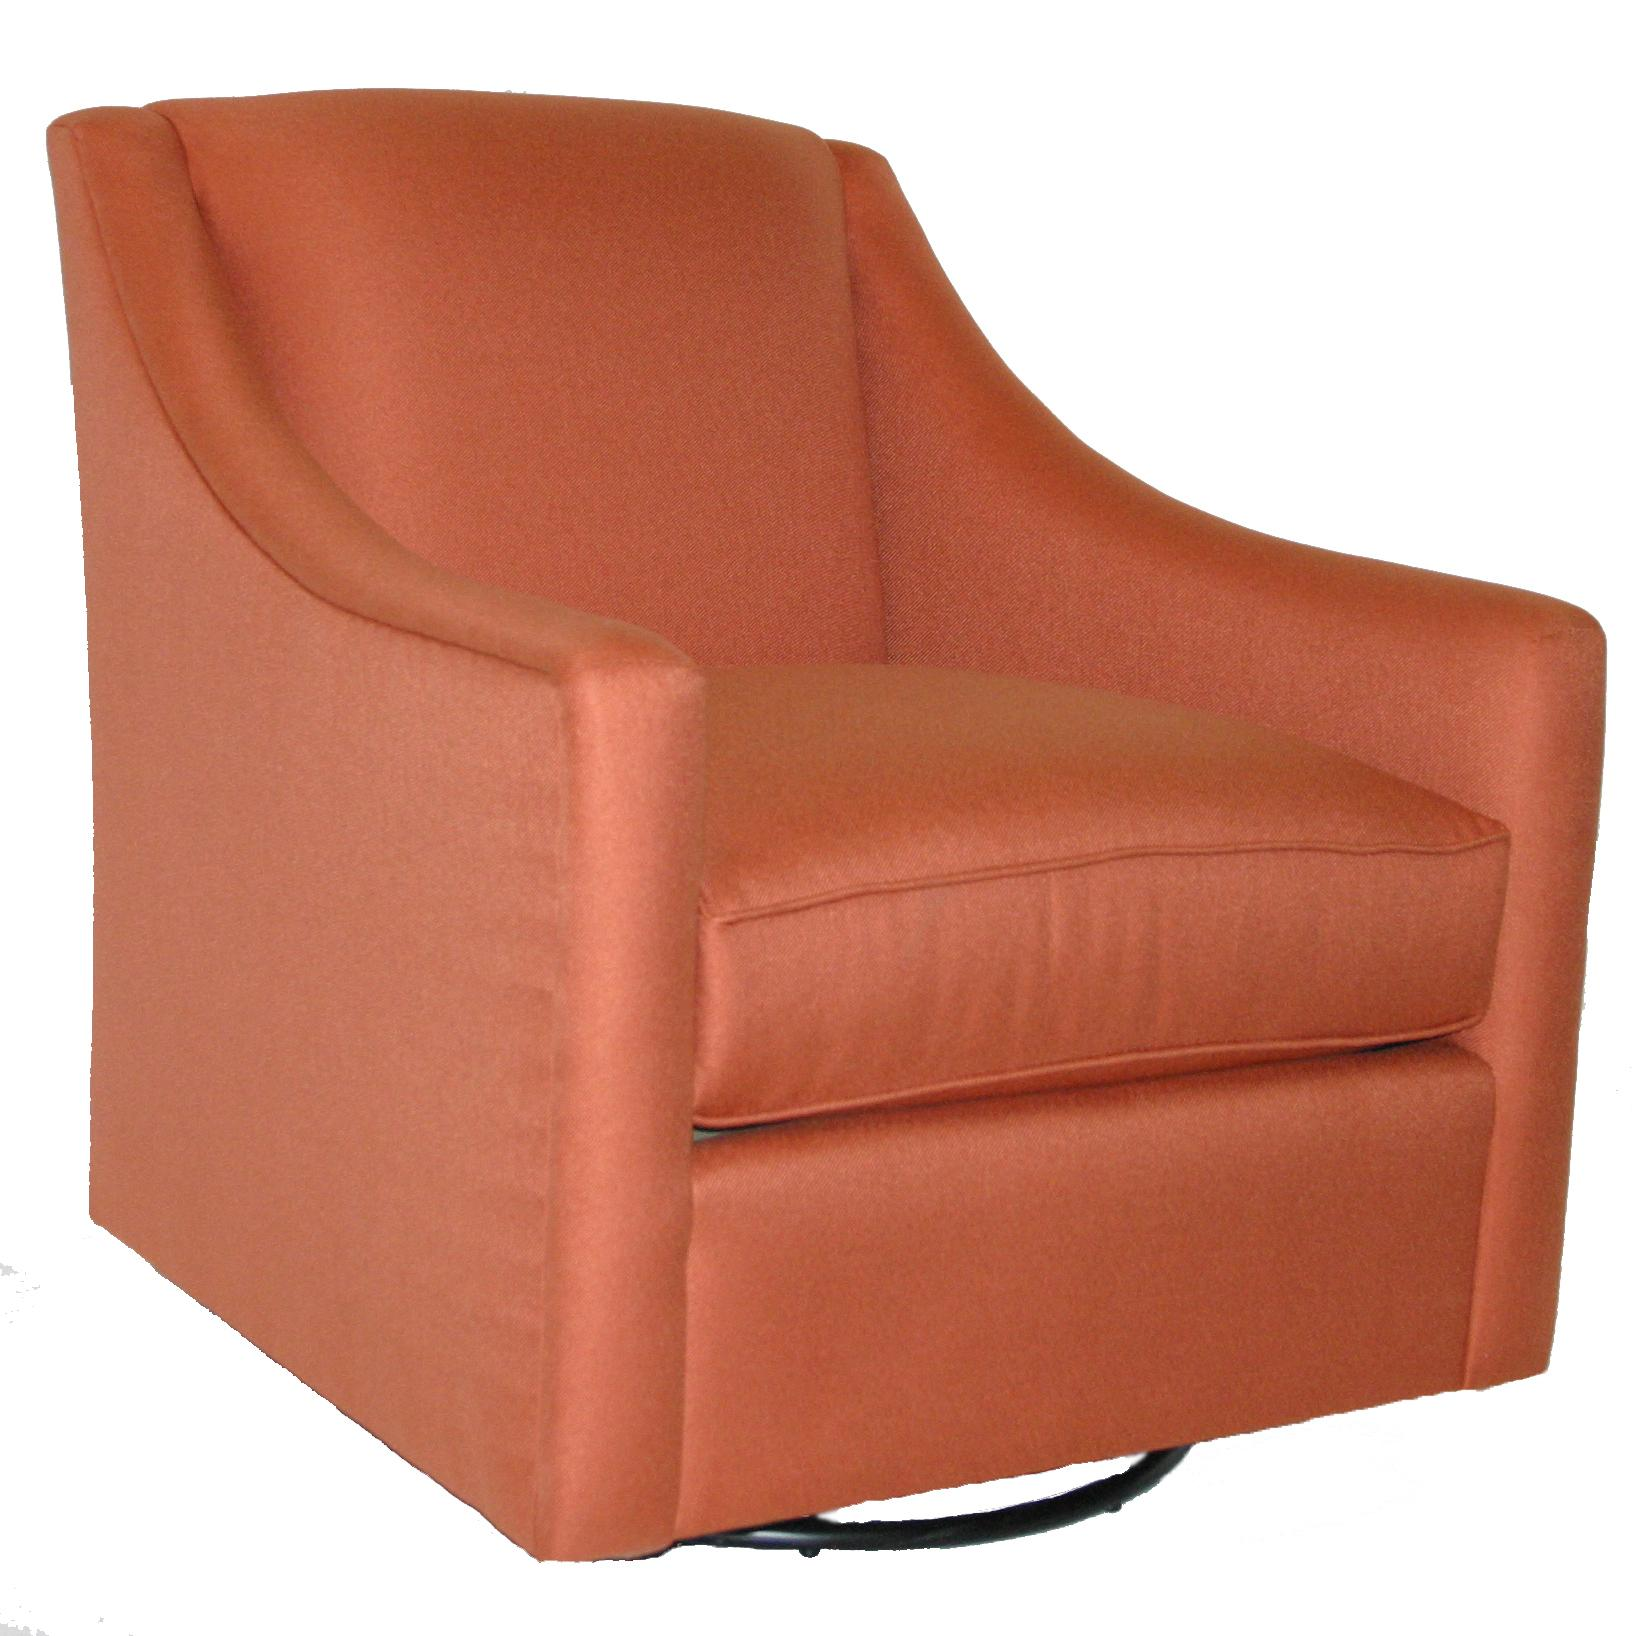 1045 Swivel Chair by Bassett at Suburban Furniture